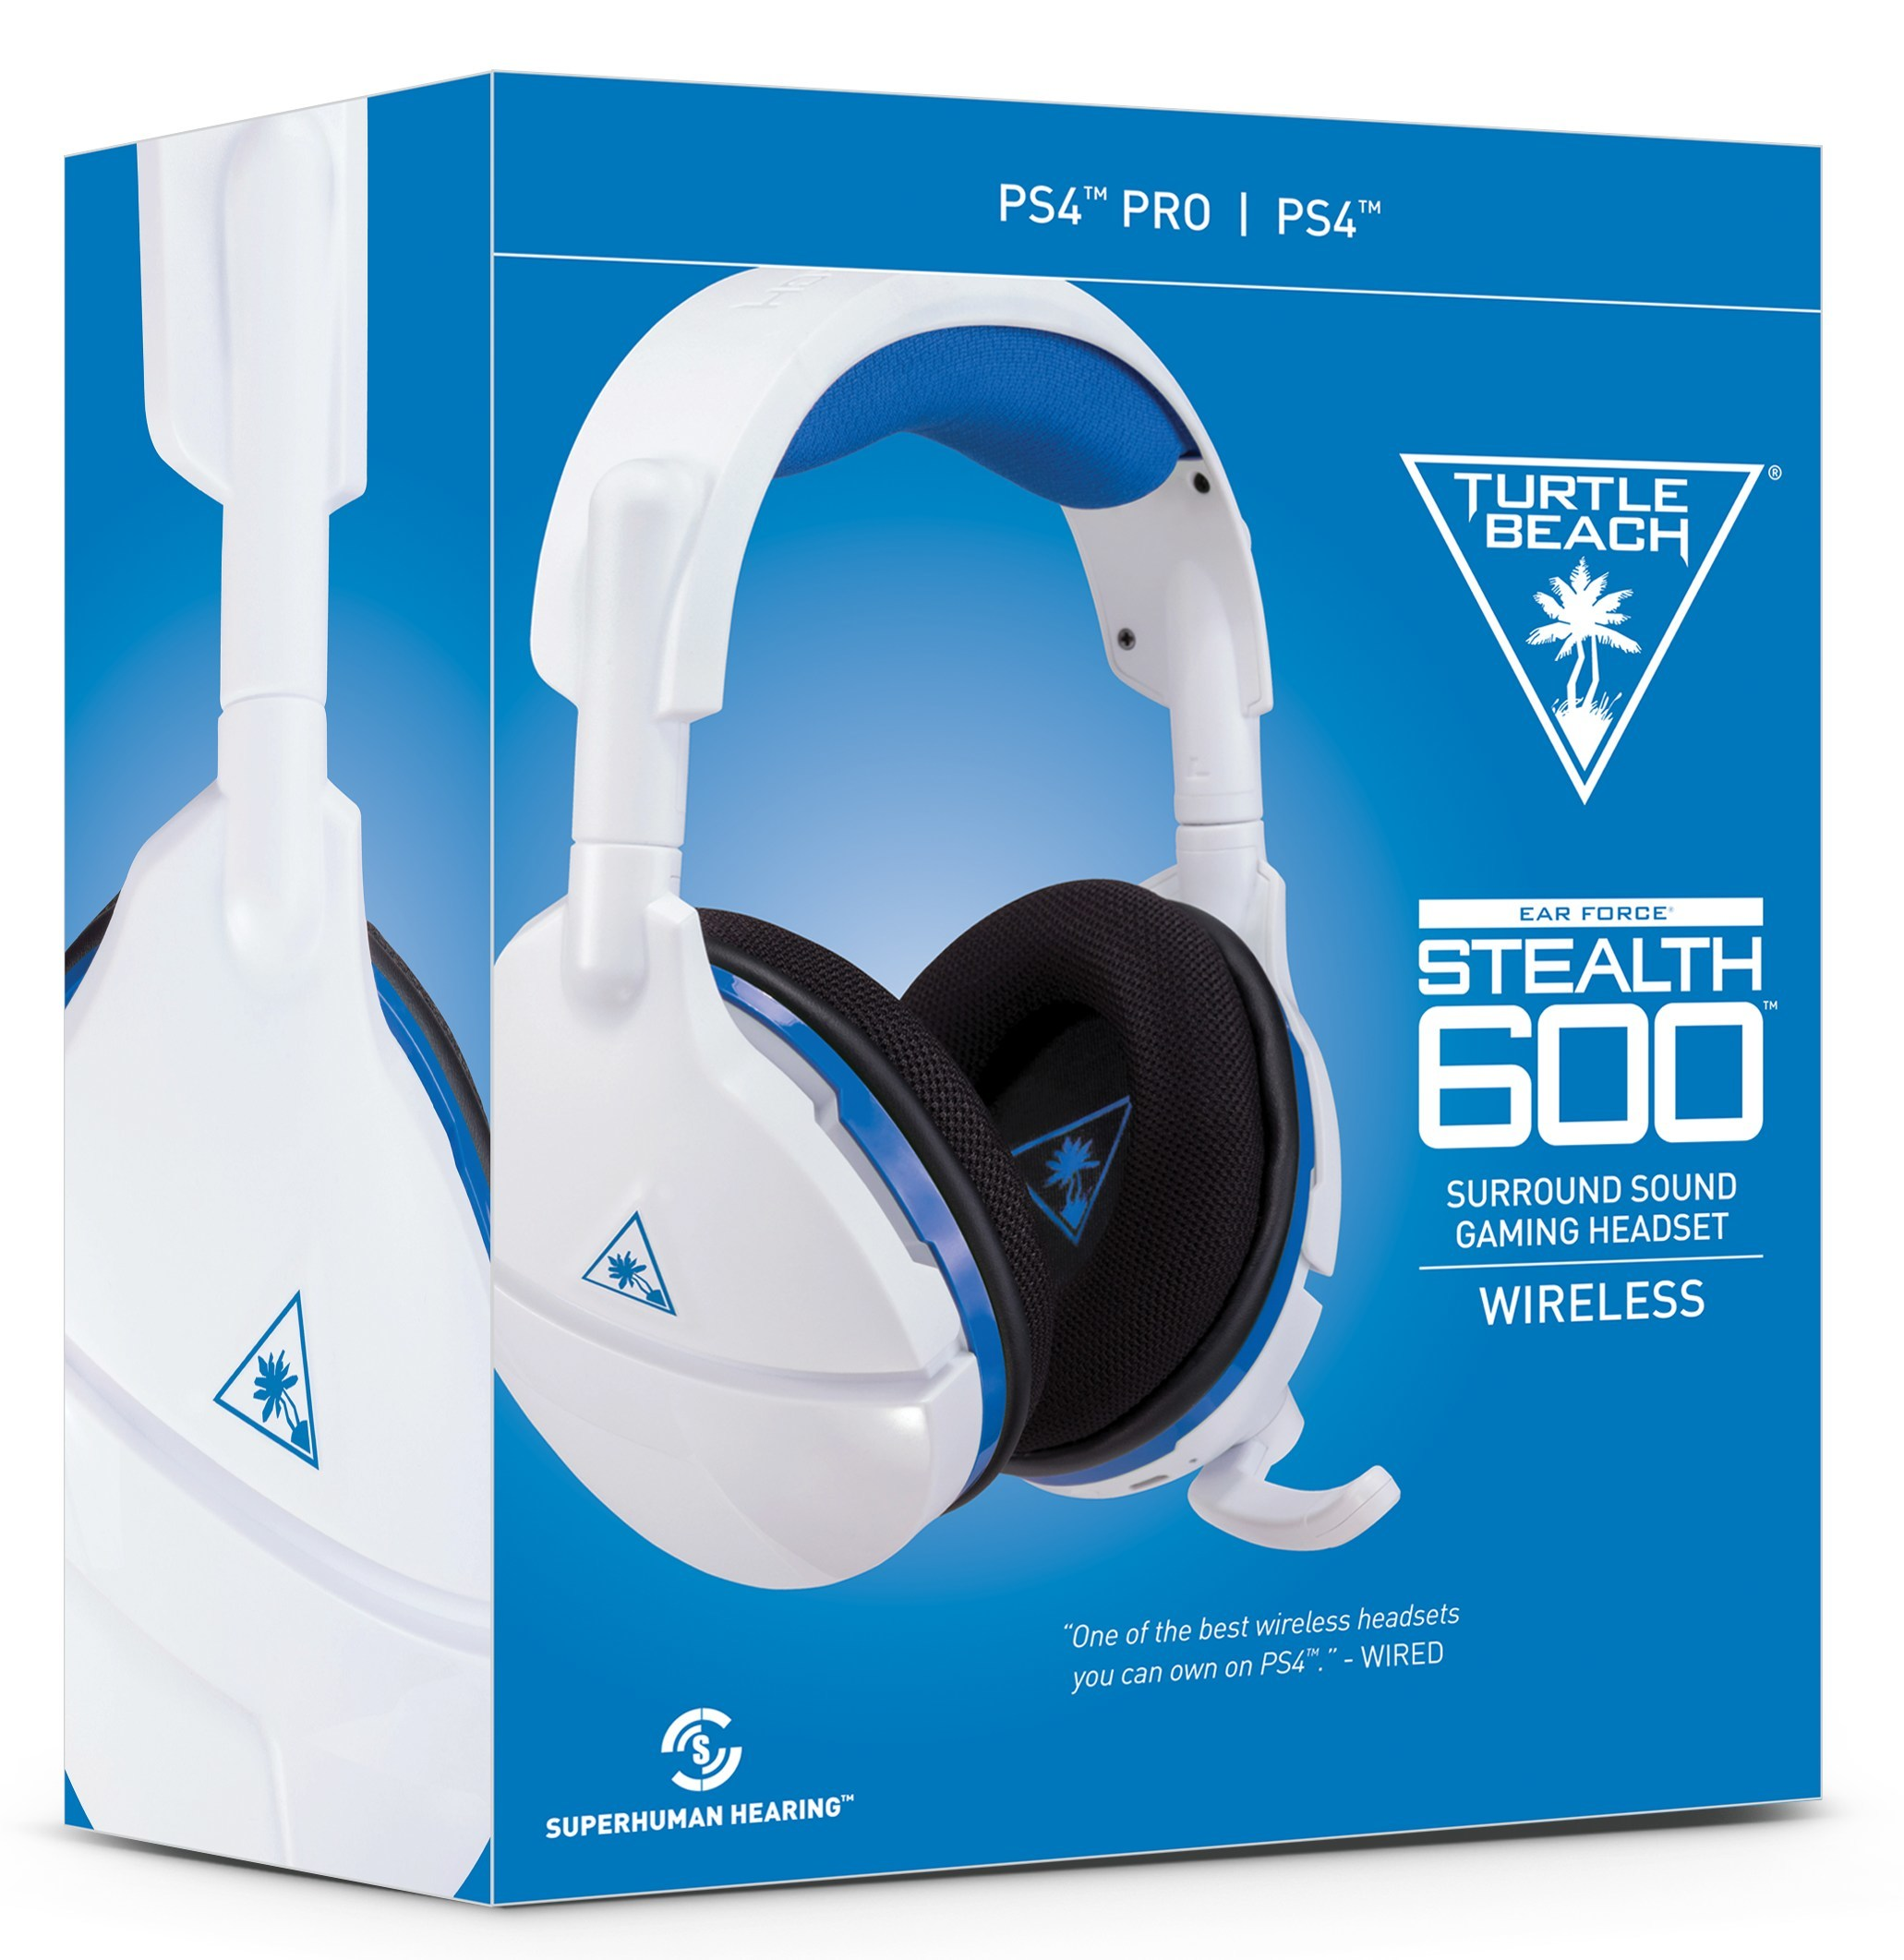 Turtle Beach's Best-Selling Stealth 600 Gaming Headset For Xbox One And  PlayStation 4 Gets A New White Colorway For The Holidays